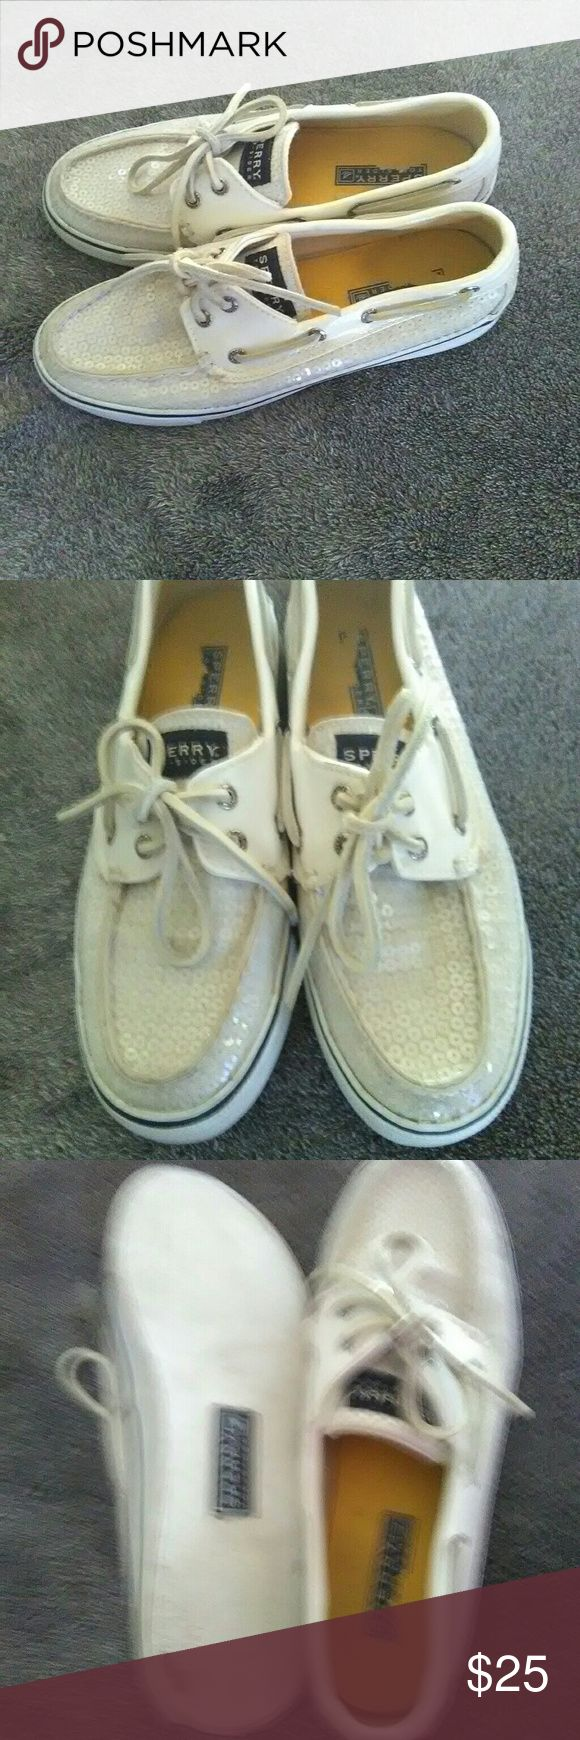 Sperry Sperry ladies shoes size 7 in good condition Sperry Shoes Flats & Loafers